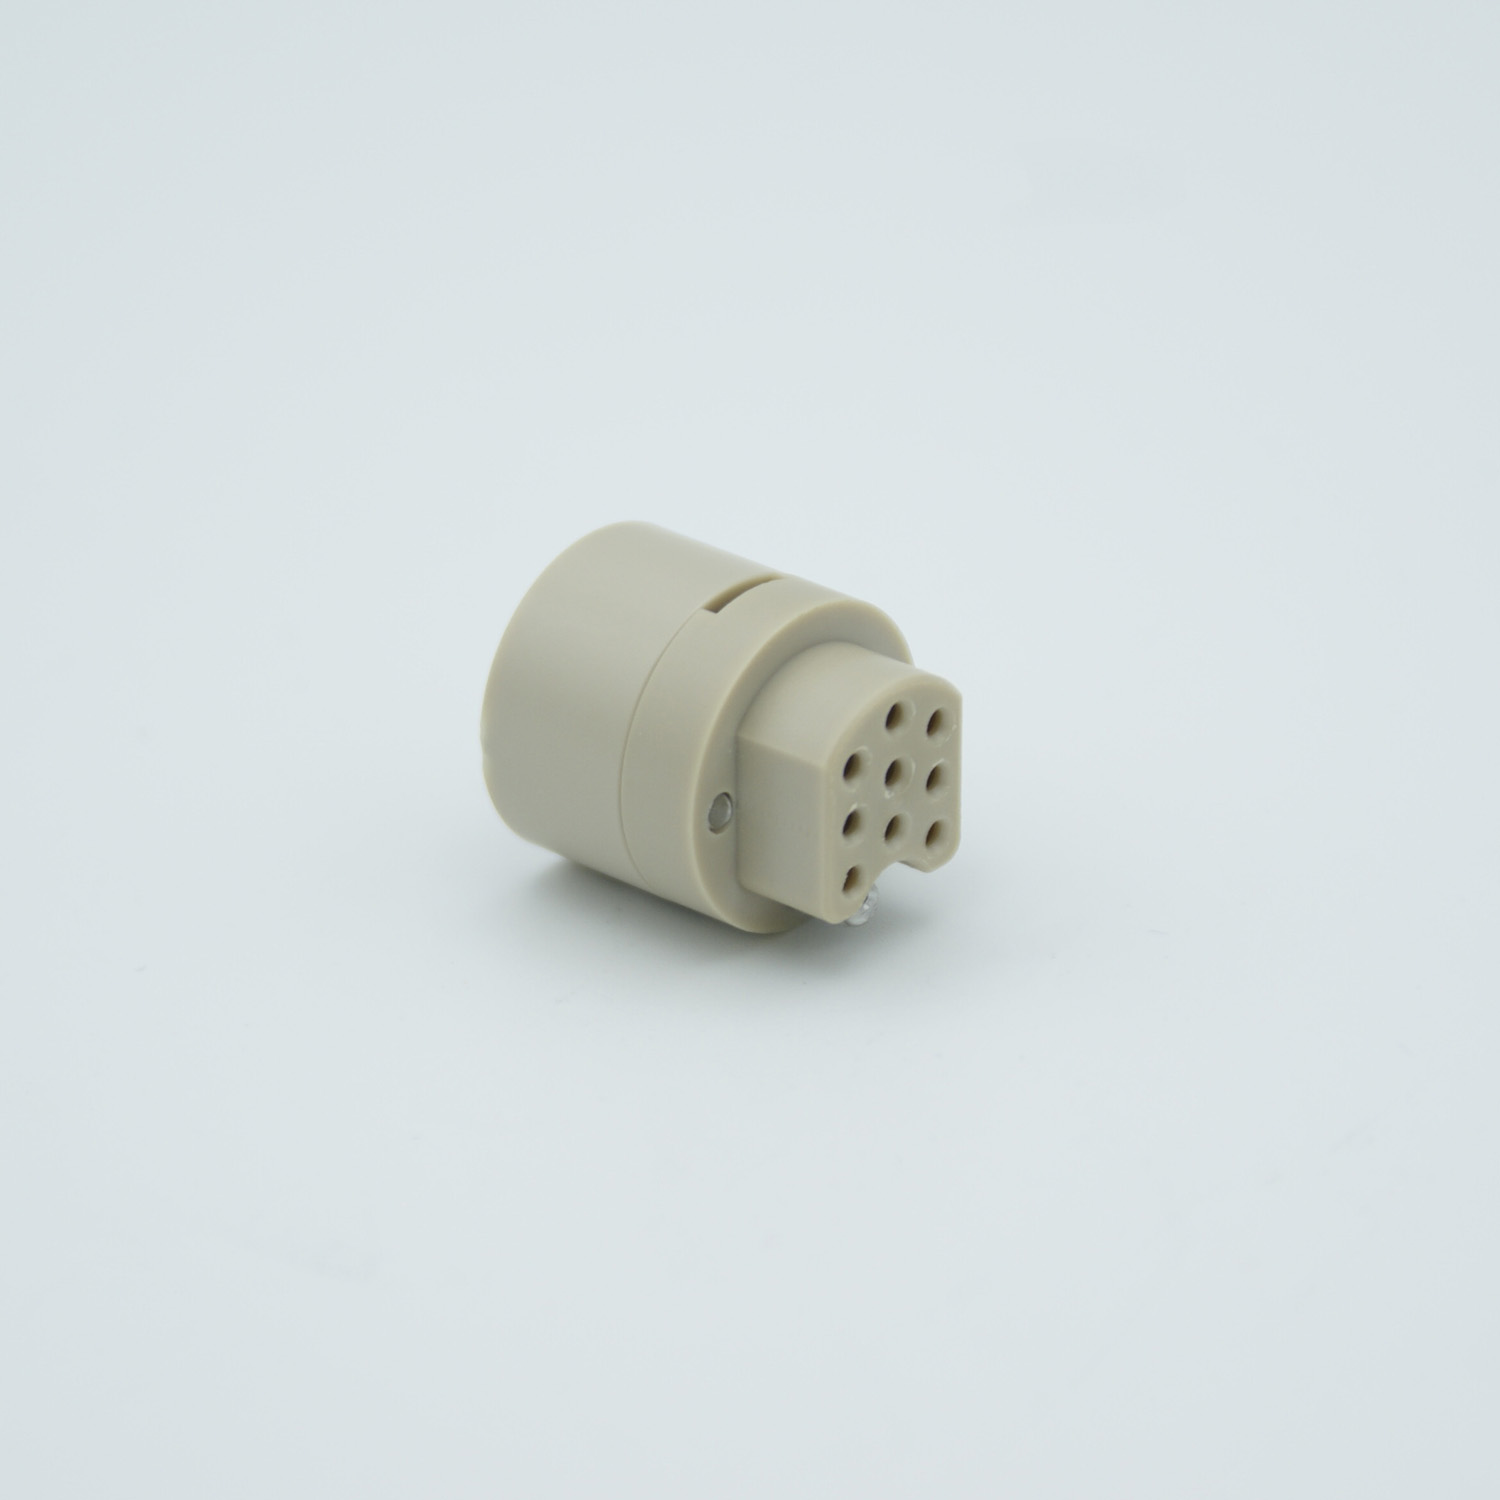 9 pin PEEK-connector for vacuum side, excluding female contacts